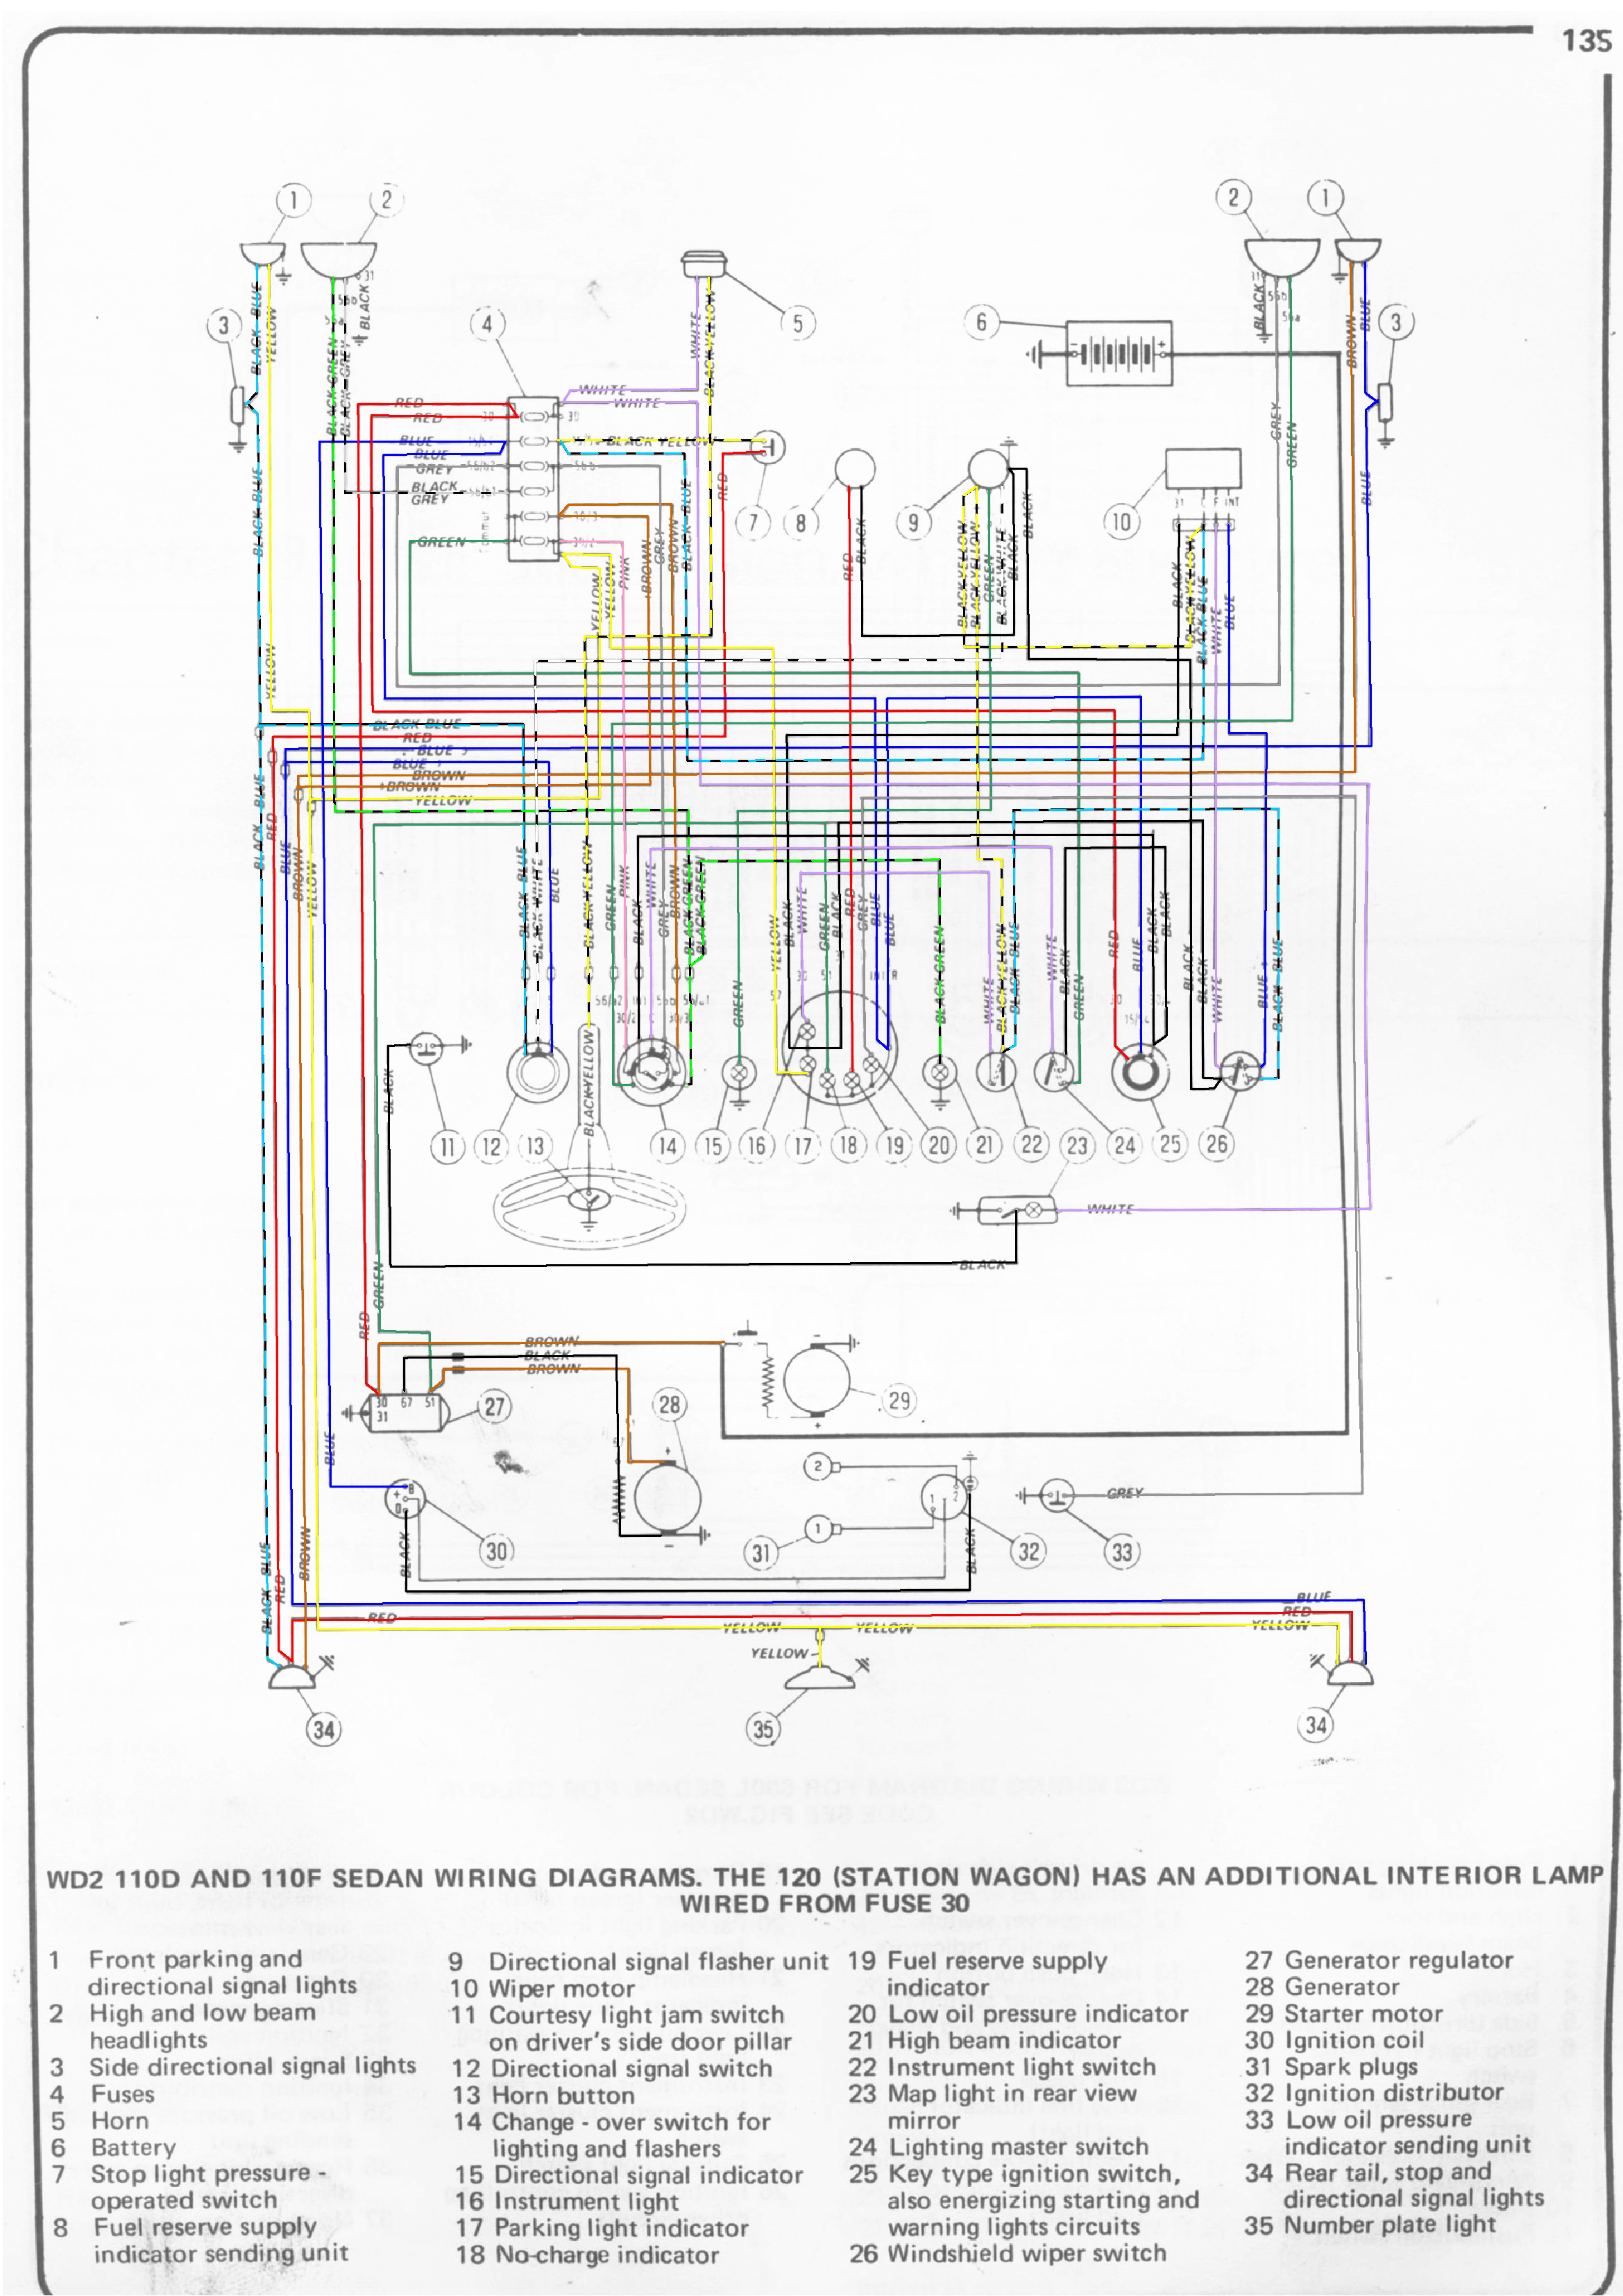 Oliver 88 Tractor Wiring Diagram Schematics Trusted Diagrams Massey Ferguson 135 77